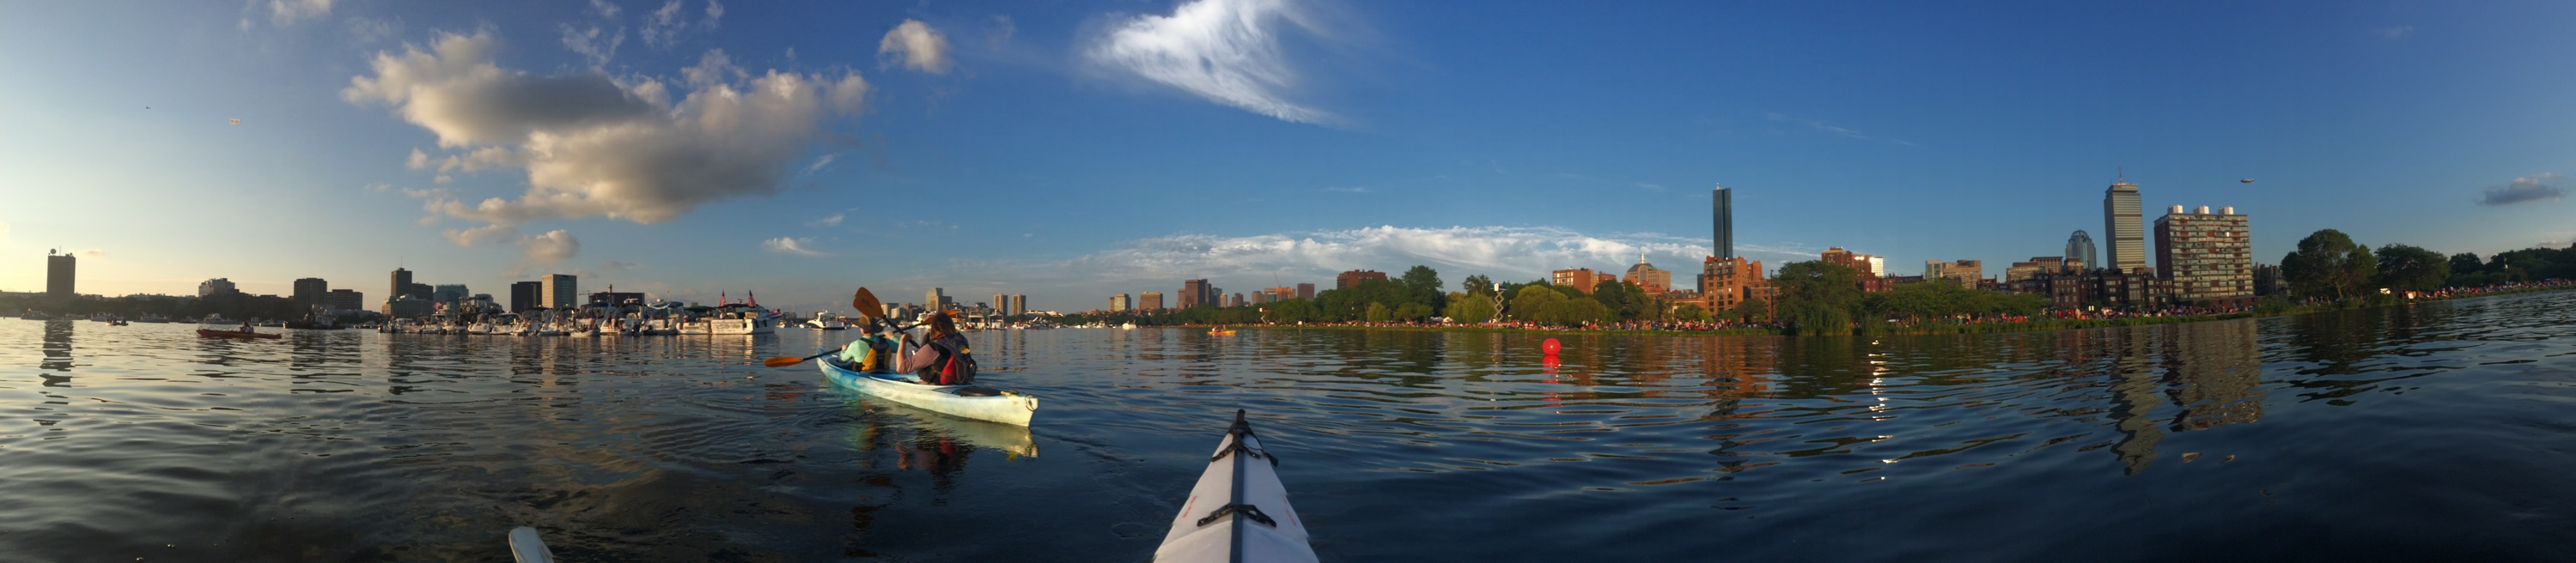 The view from my kayak as we approached the esplanade on our way to watch the fireworks!